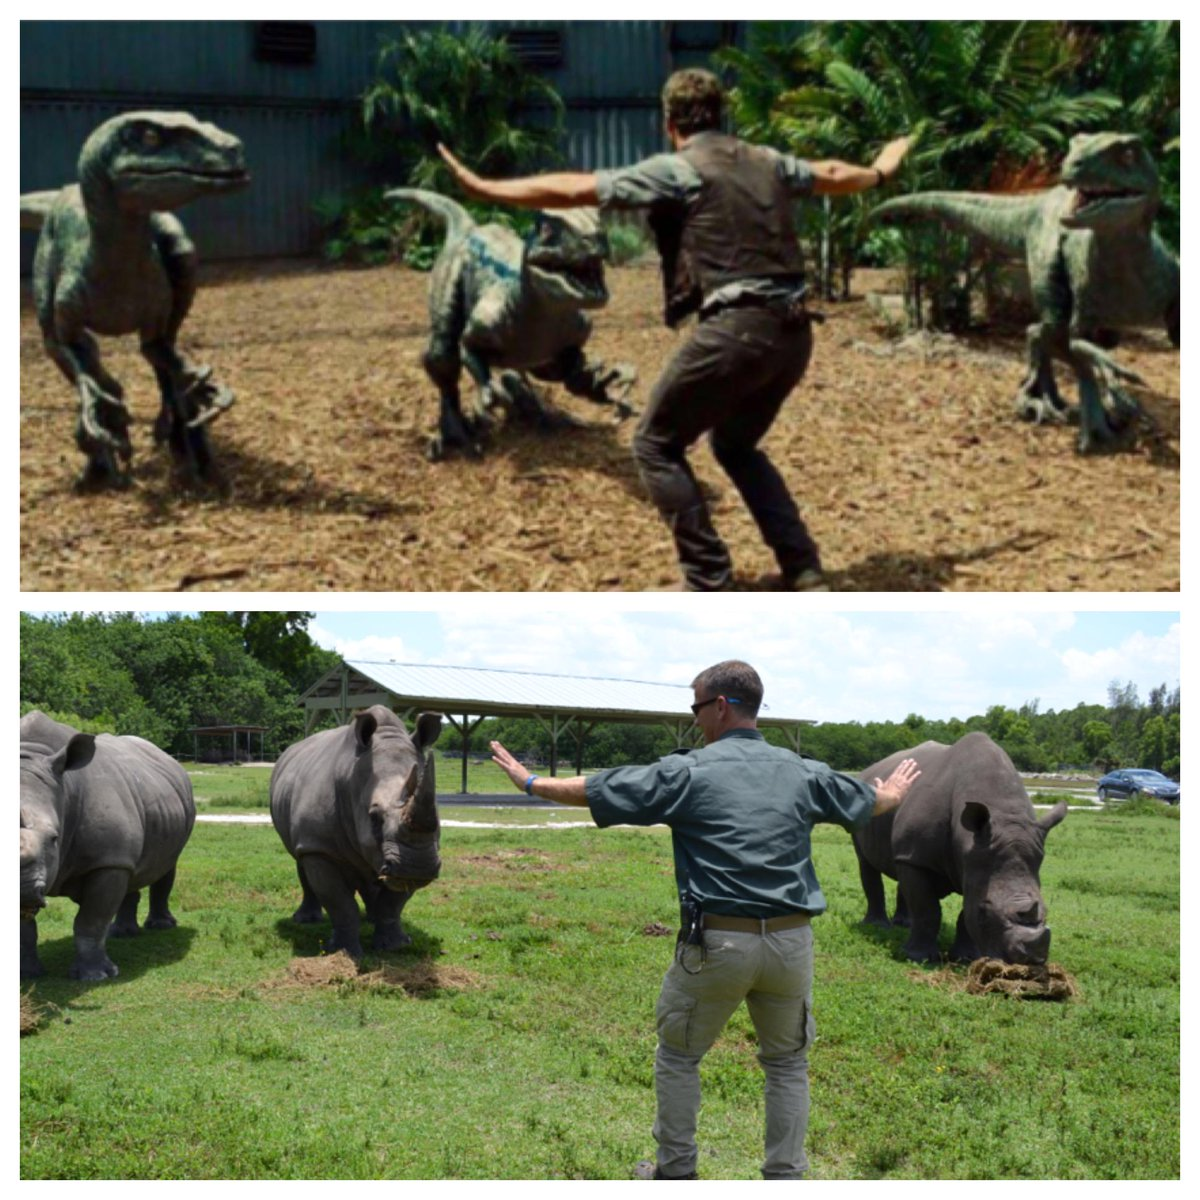 We are recreating Chris Pratt's raptor control from #JurassicWorld - with our Southern White Rhinos! http://t.co/ntnm1UsibJ